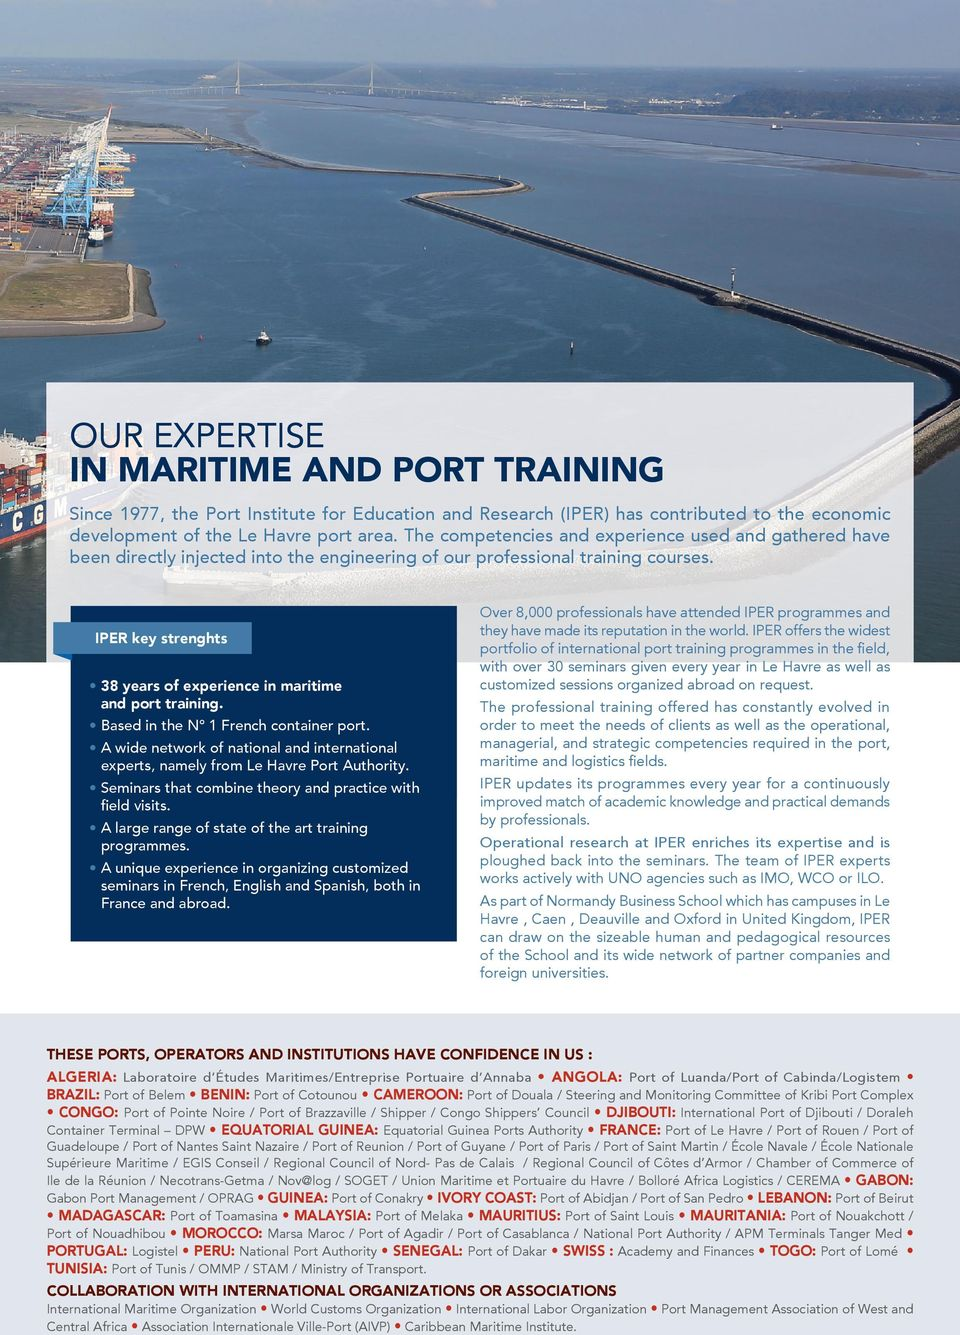 IPER key strenghts 38 years of experience in maritime and port training. Based in the N 1 French container port.